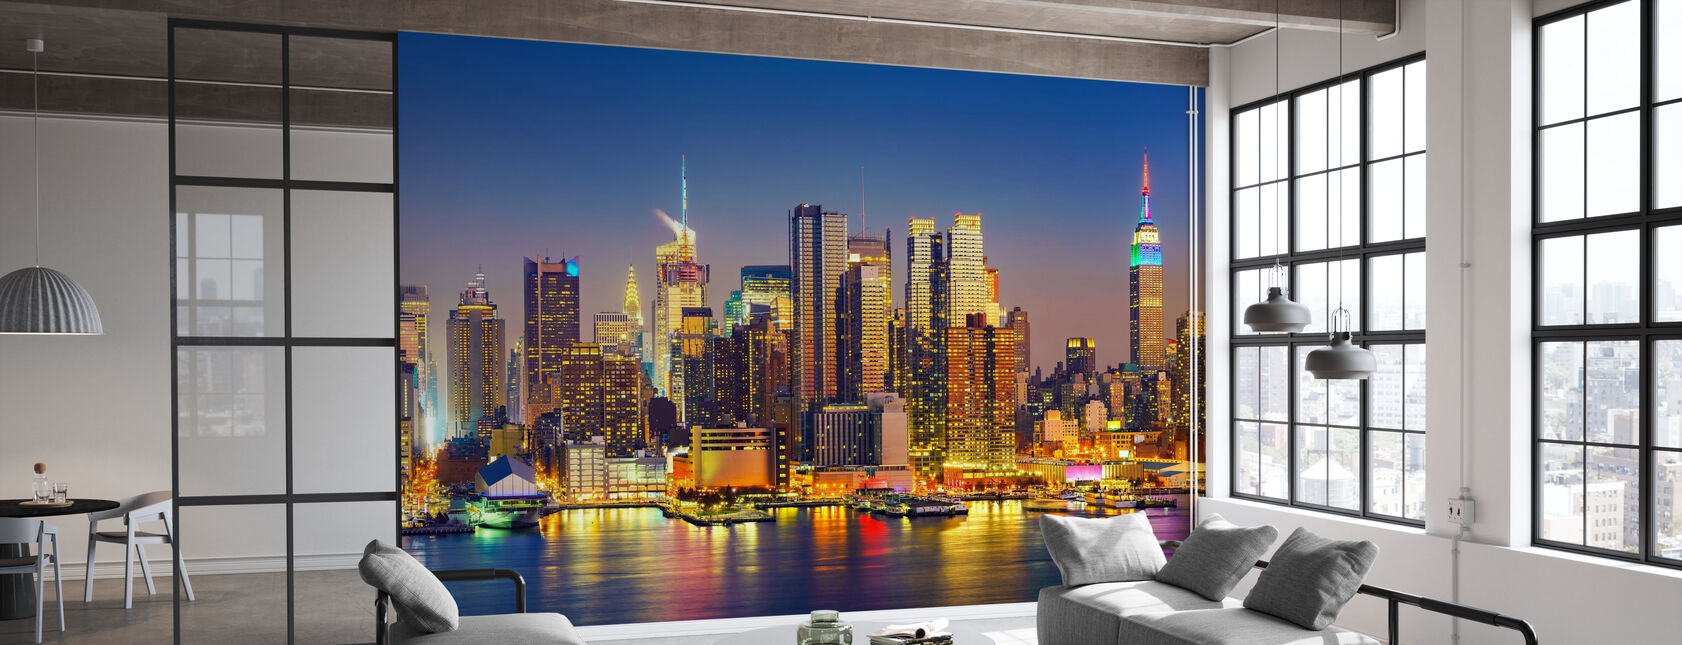 Manhattan After Sunset - Wallpaper - Office